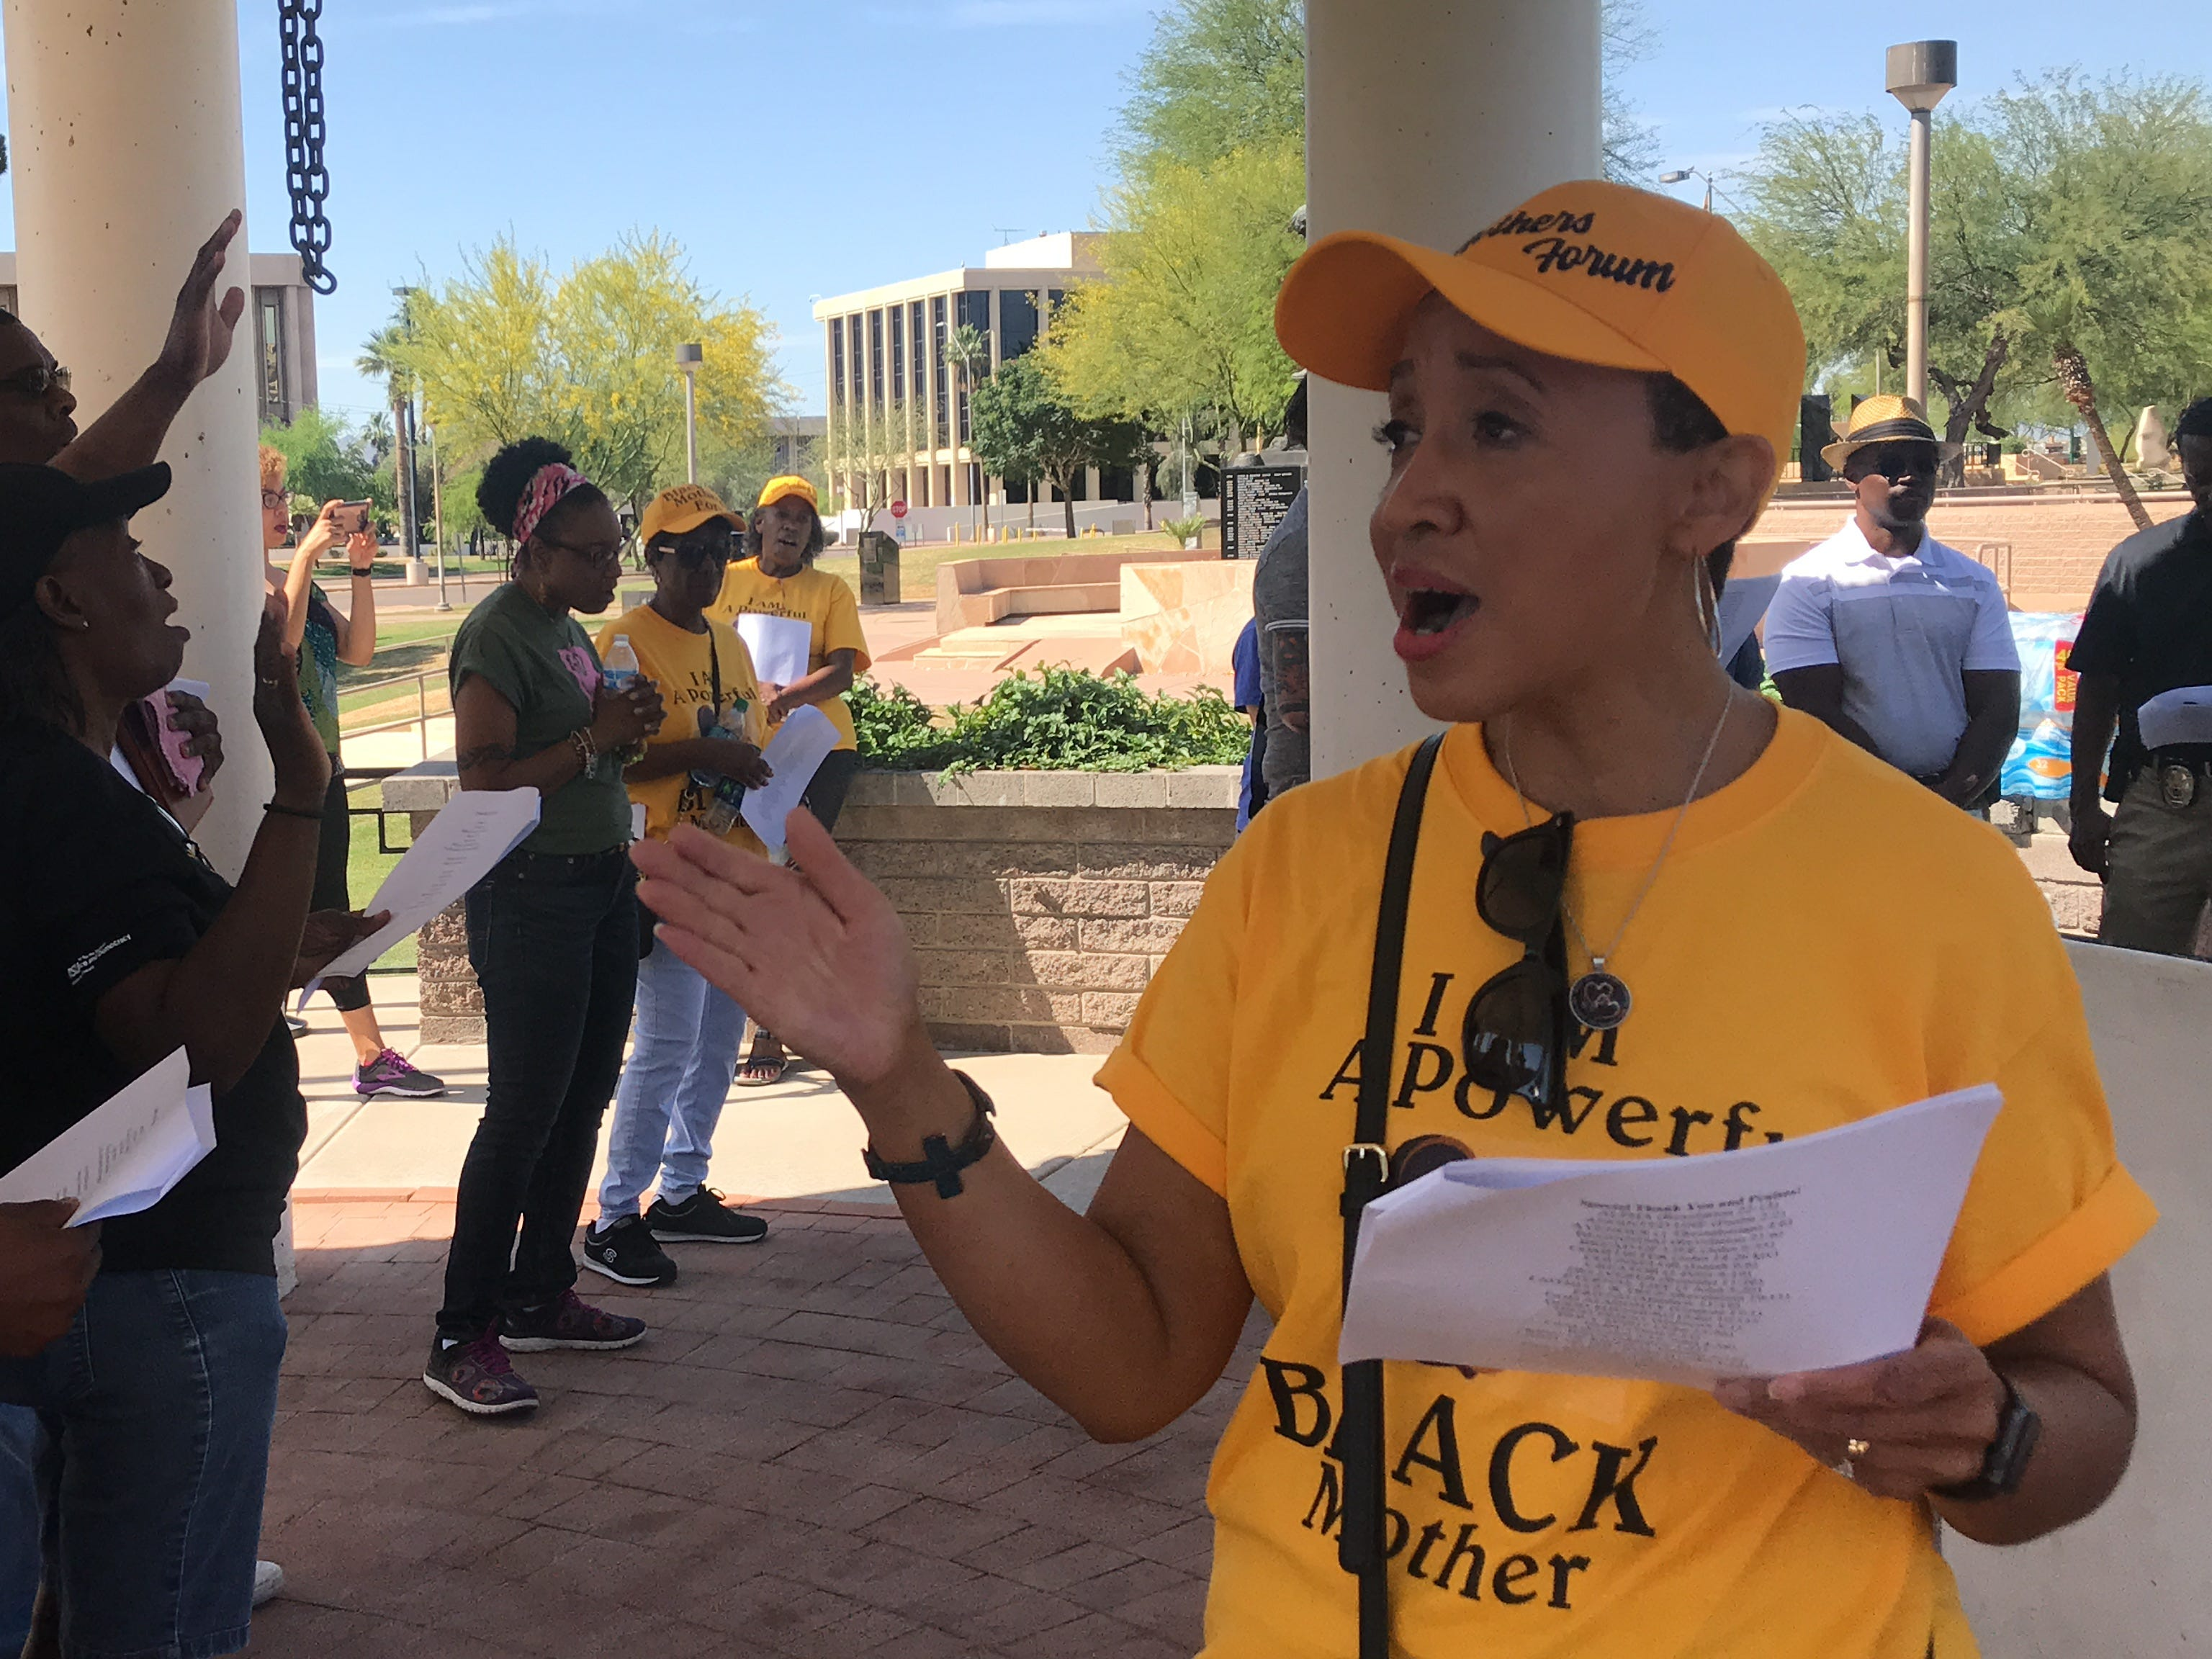 Janelle Wood (right), founder of Black Mothers Forum, leads a group of people in song at Wesley Bolin Memorial Plaza in Phoenix on May 11, 2019.